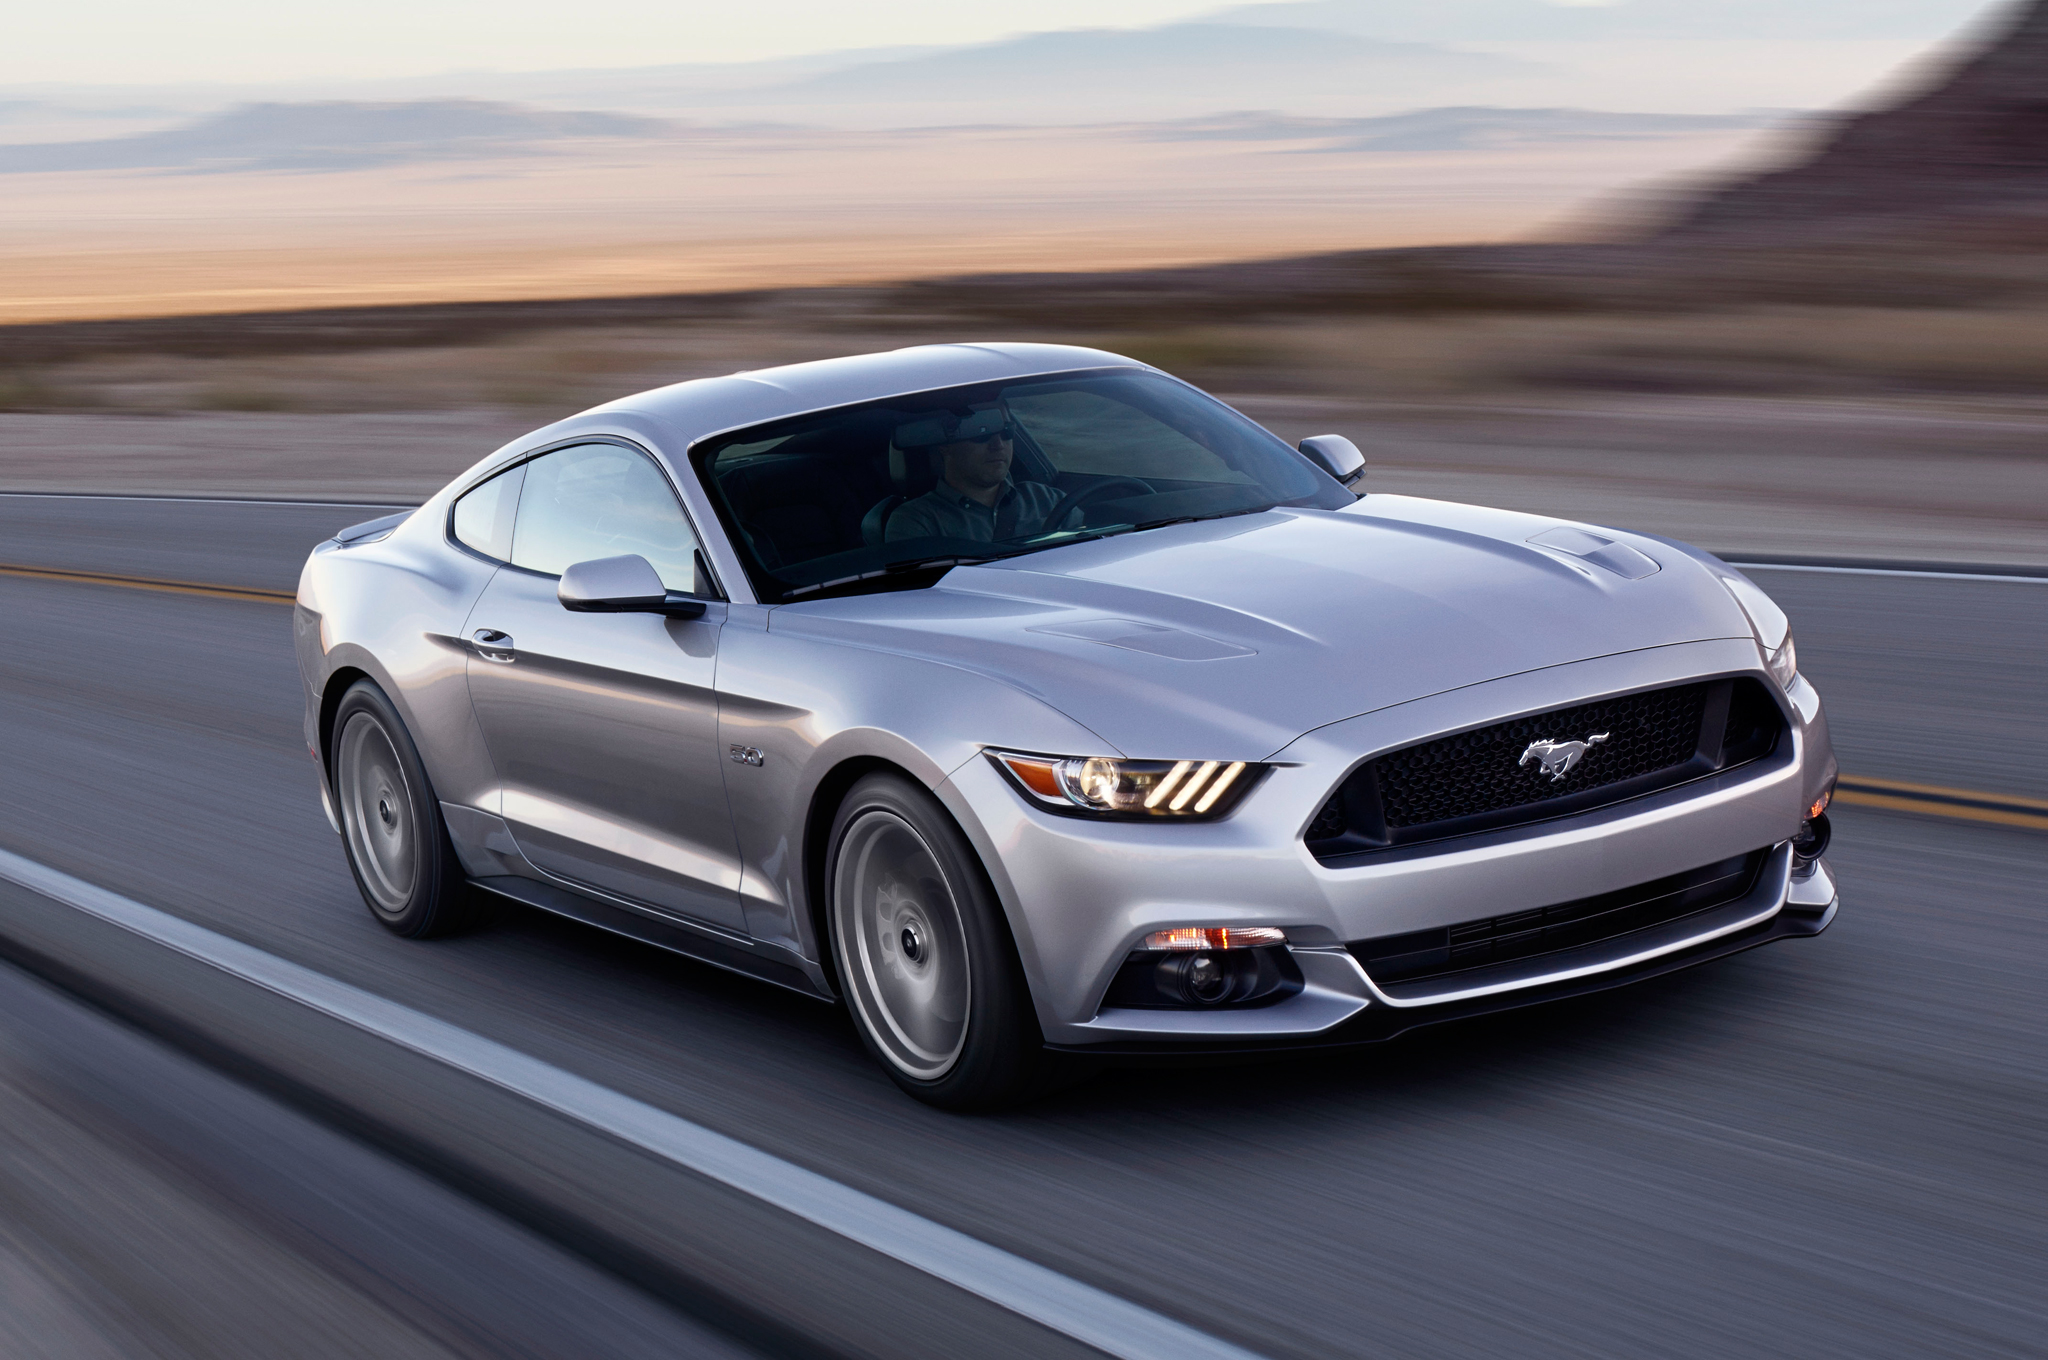 Designers discuss 2015 ford mustang styling w video motortrend